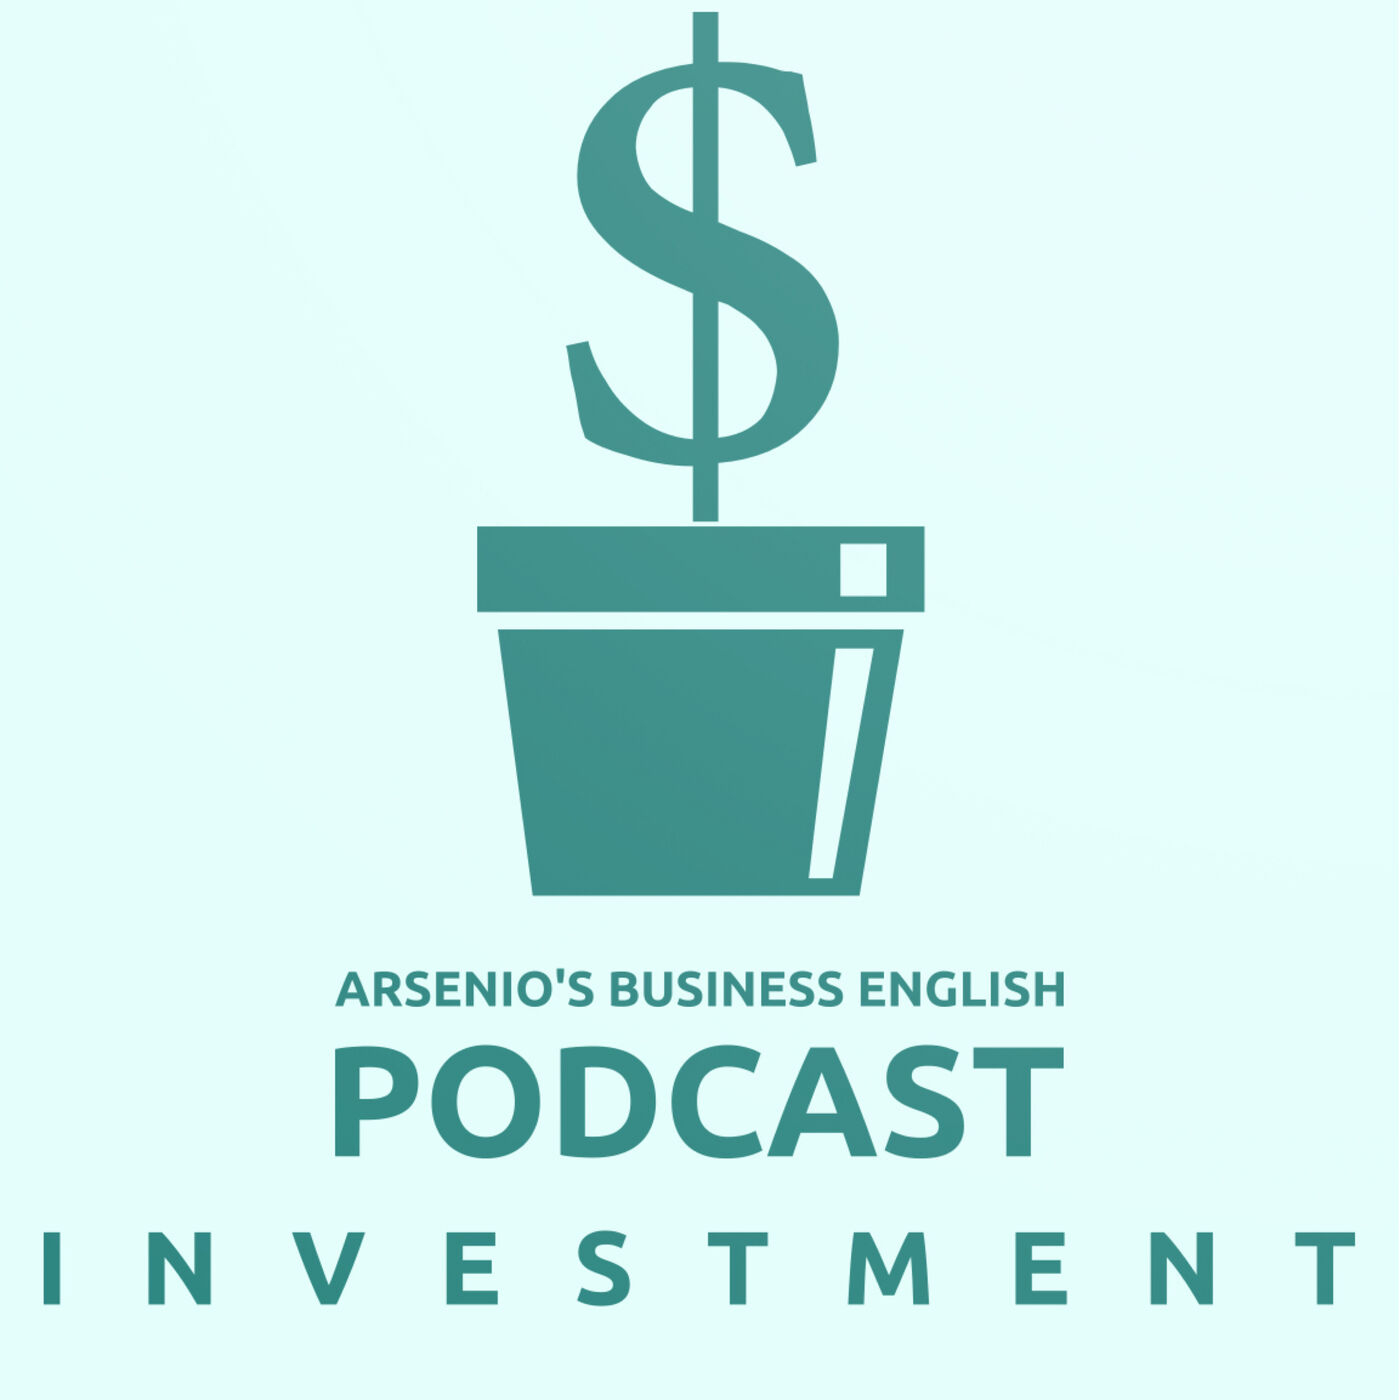 Arsenio's Business English Podcast | Season 6 | Investment | Introduction to Investment!